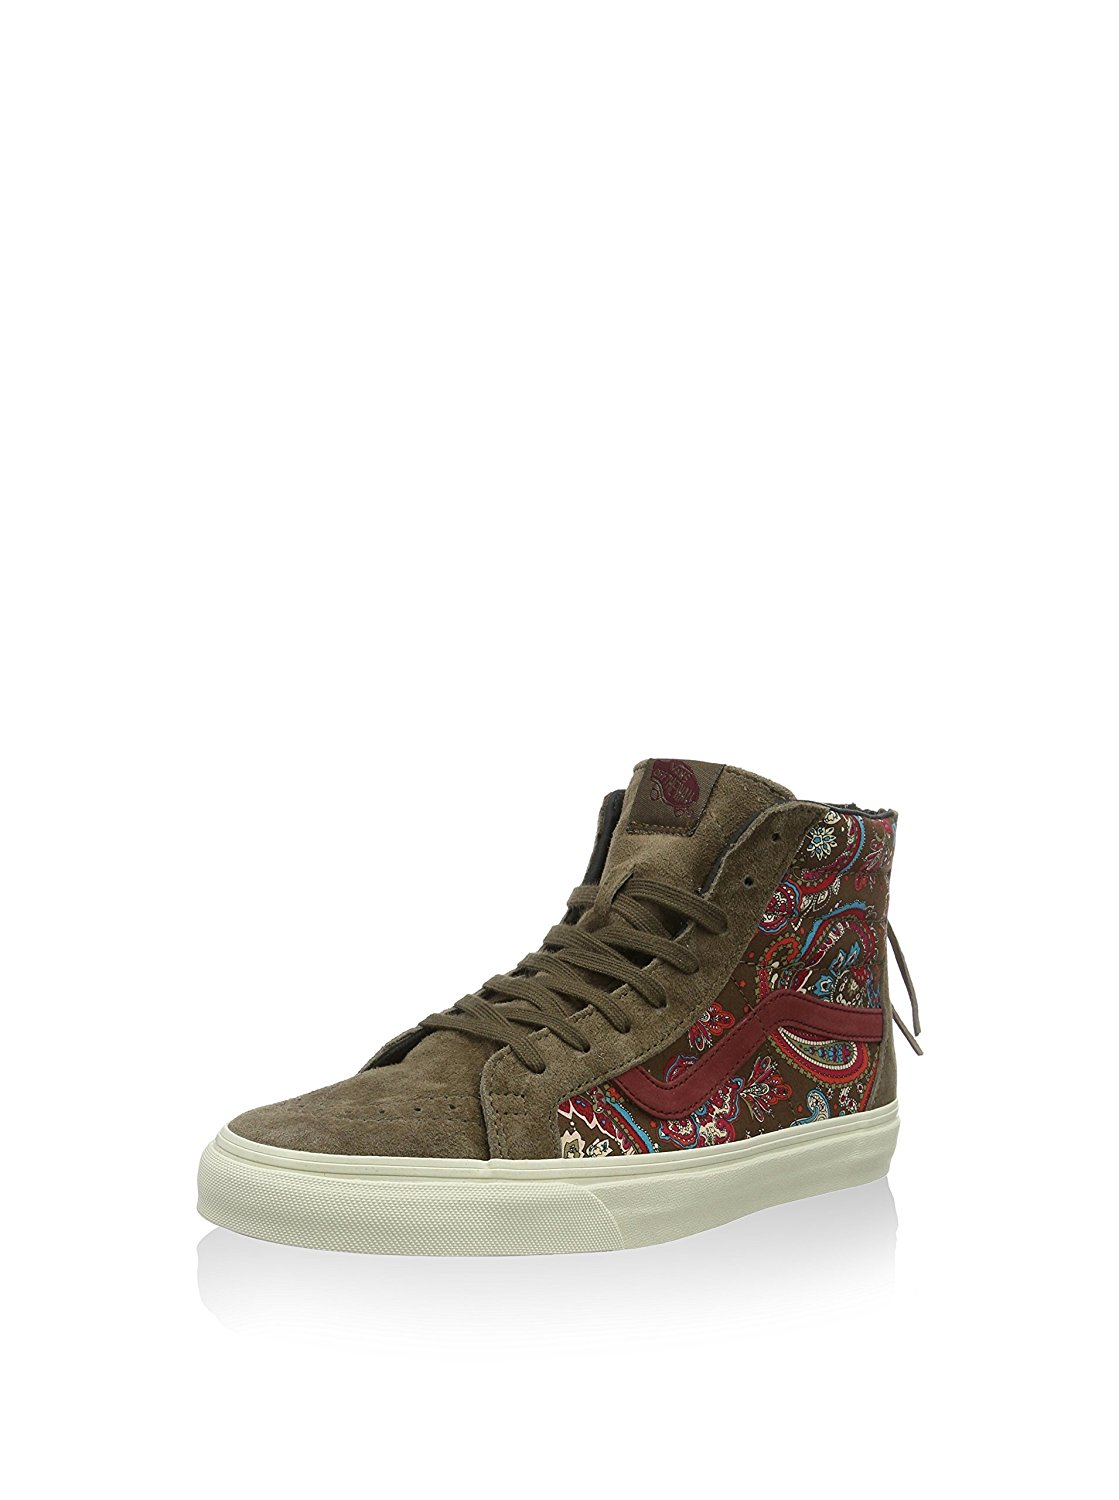 a50966fcefecbd Get Quotations · Vans Sk8-Hi Zip Ca Paisley Olive Ankle-High Suede Fashion  Sneaker - 10M